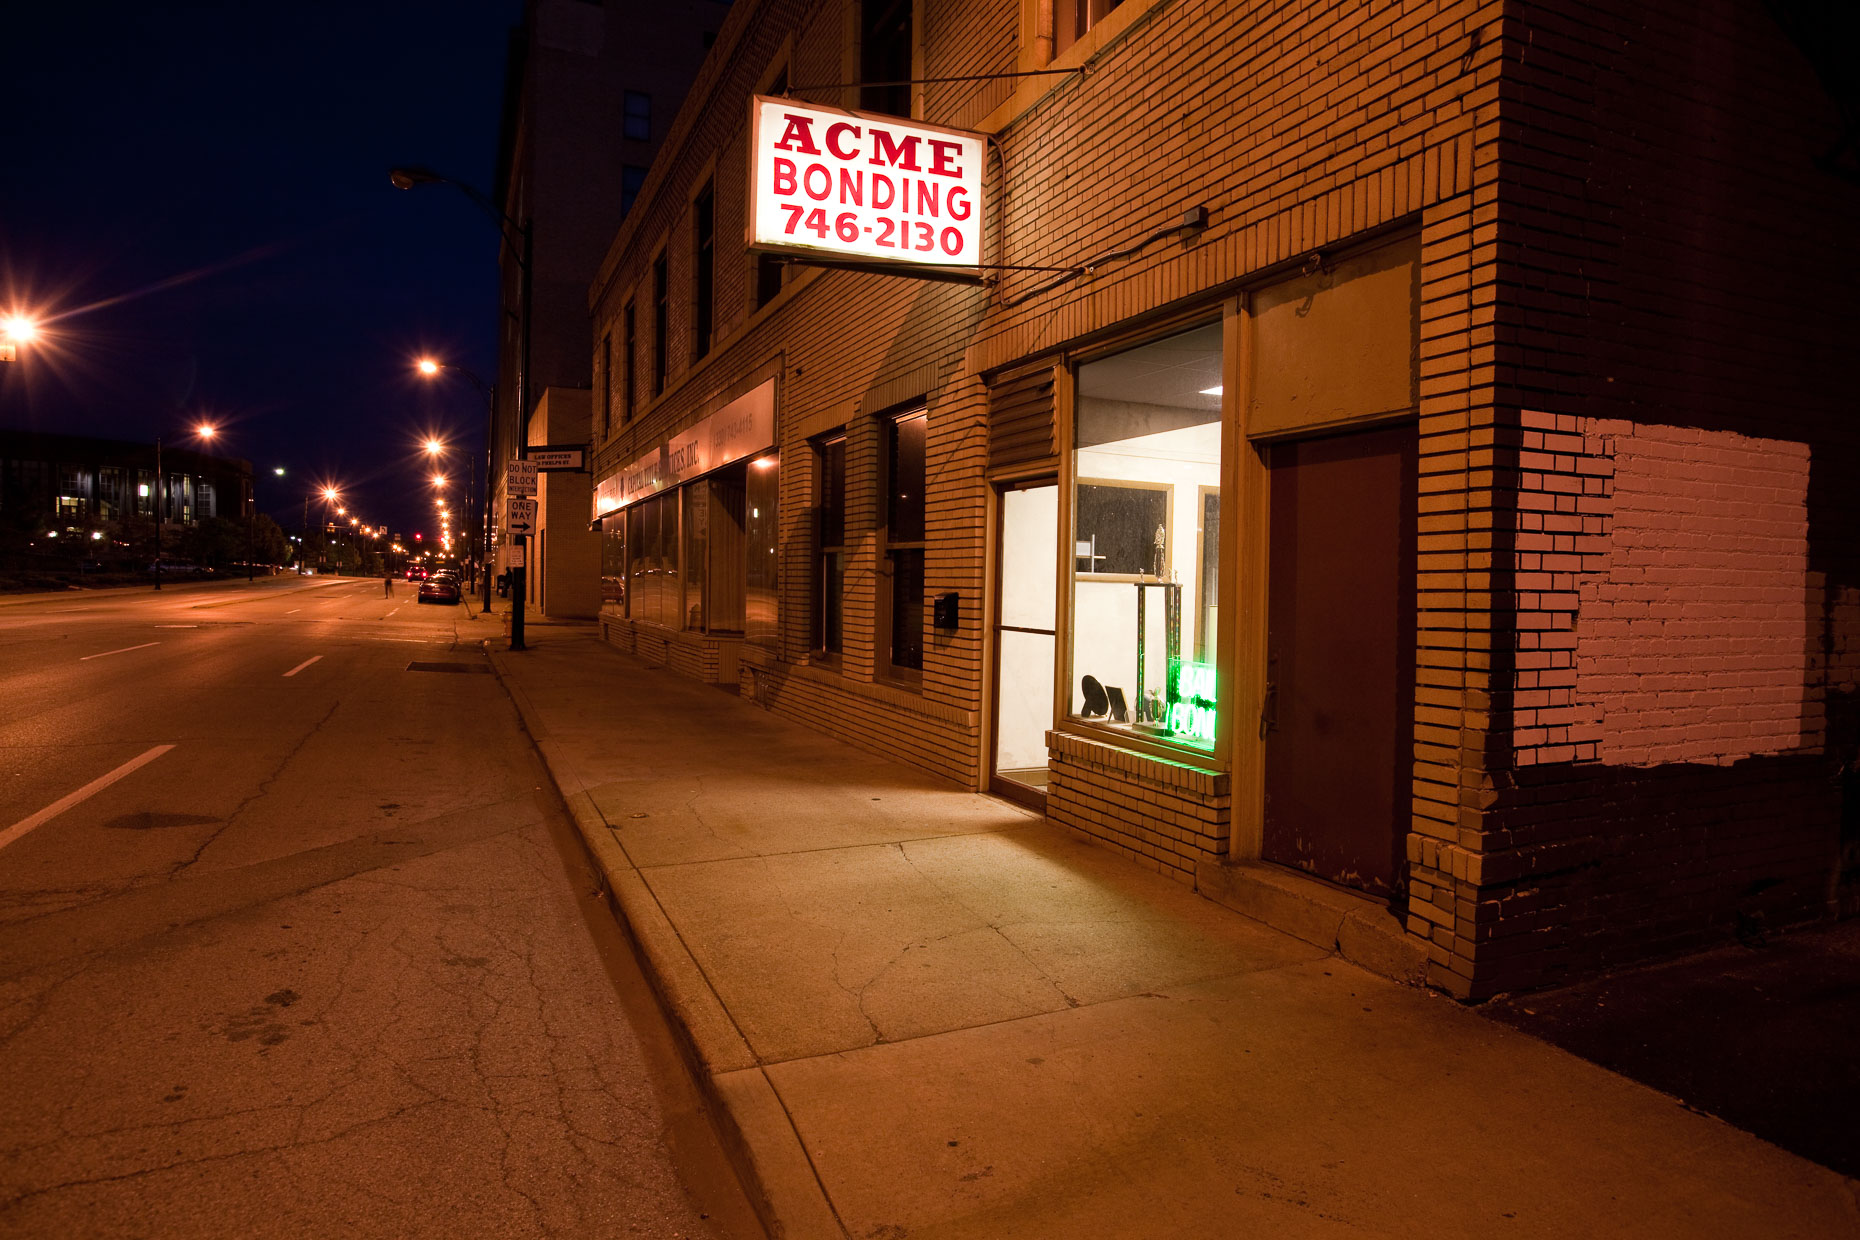 Bail bonds office at night on city street by David Zaitz